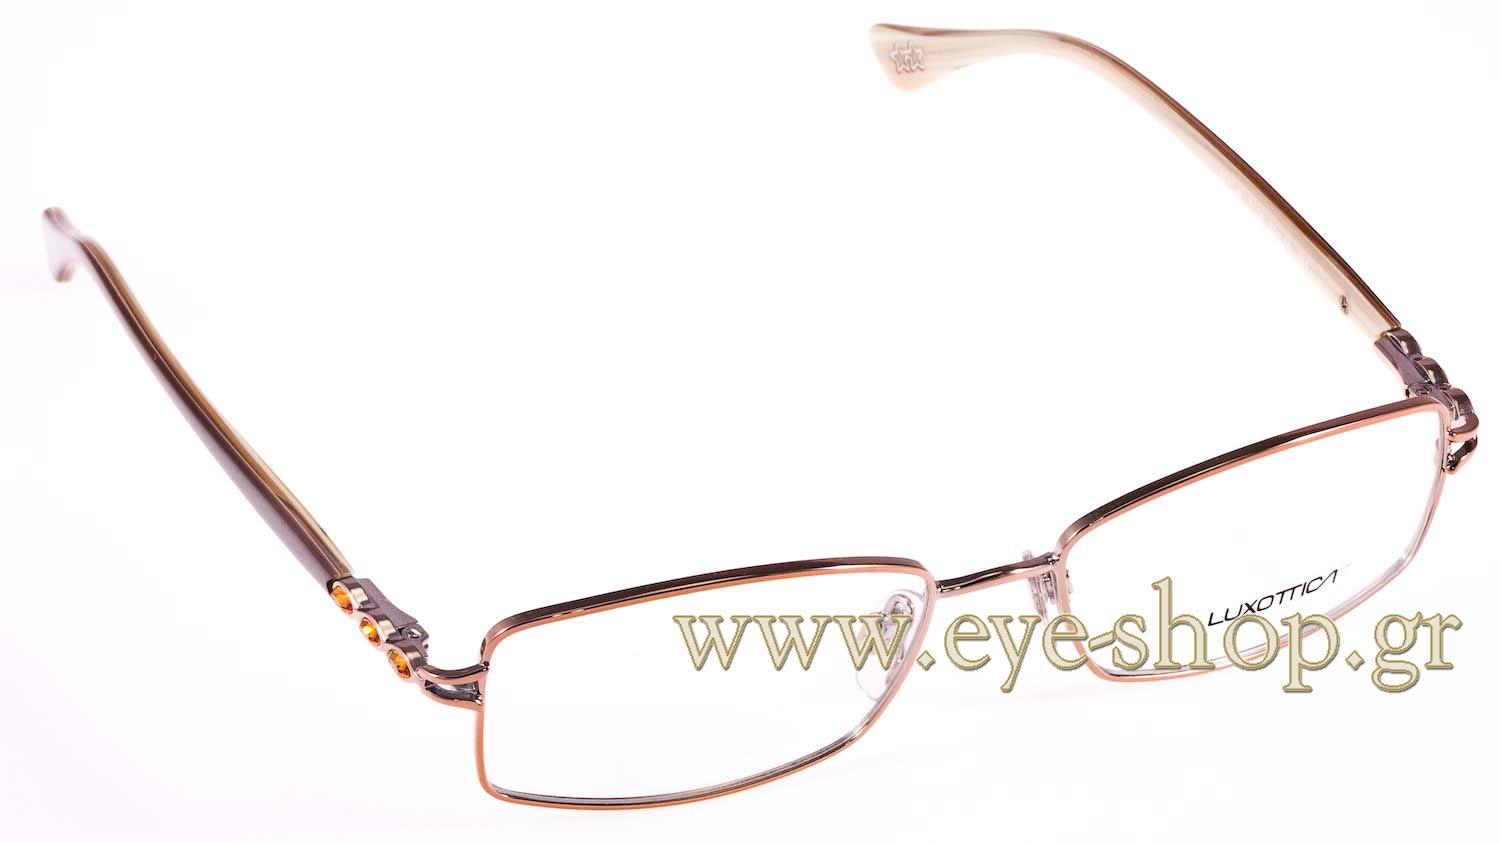 Eyeglass Frames Not Made By Luxottica : EYEWEAR LUXOTTICA 2272B T126 52? Women 2017 ver1.